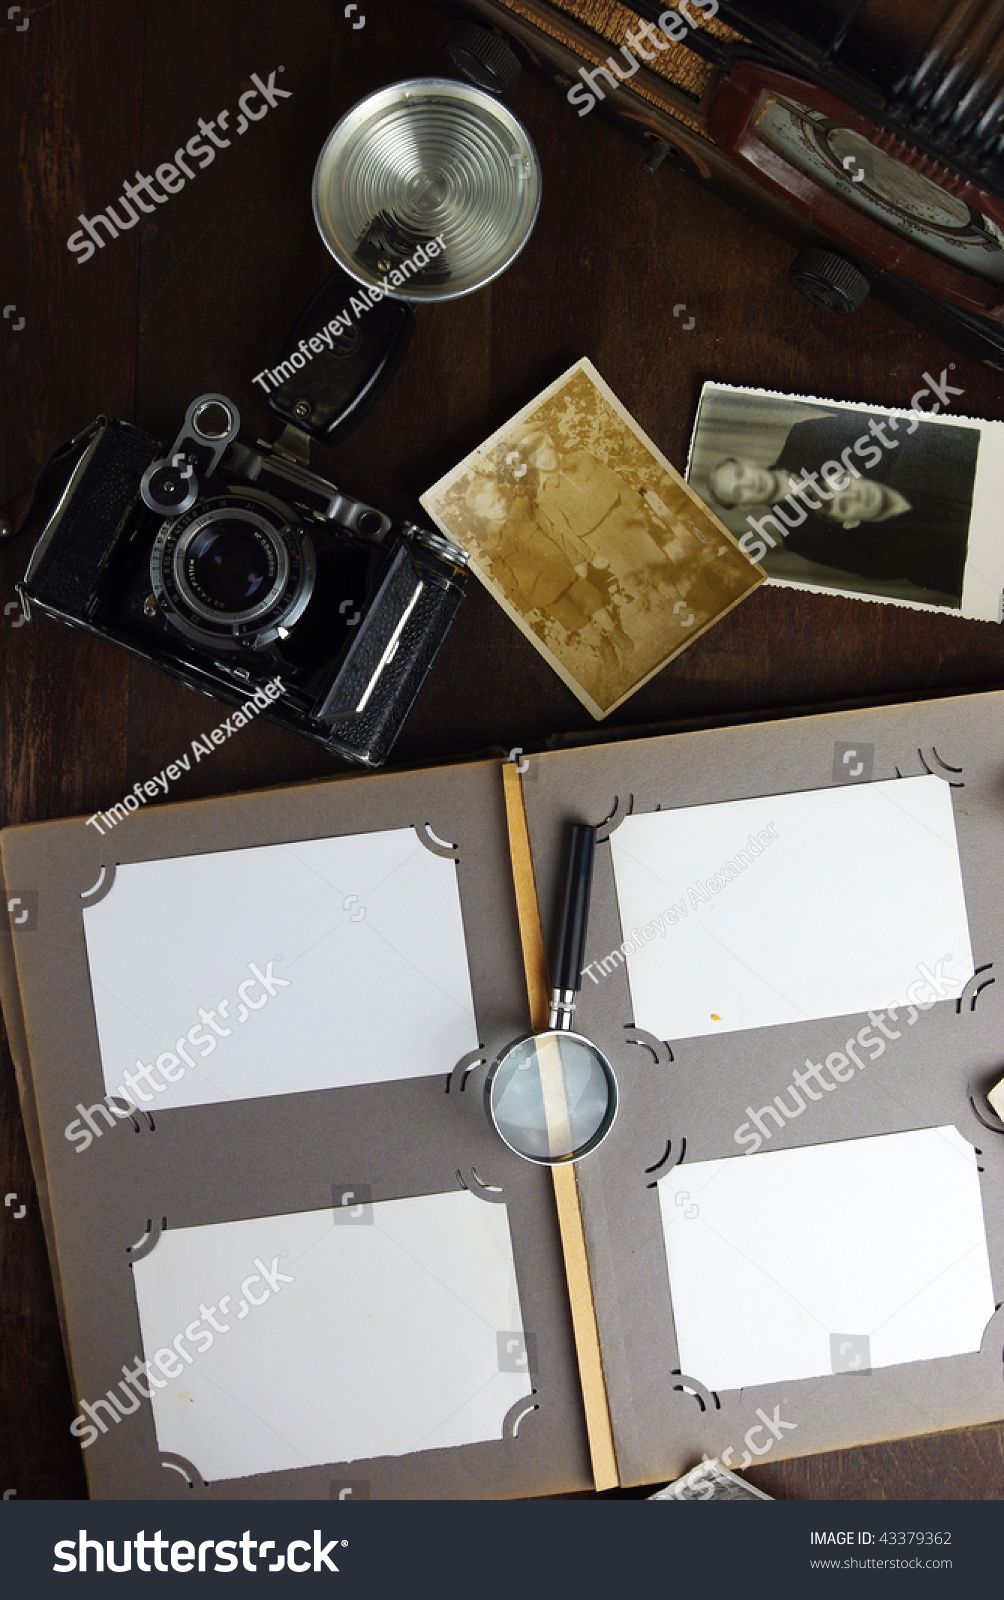 Old fashioned objects stock photo 43379362 shutterstock for Old objects